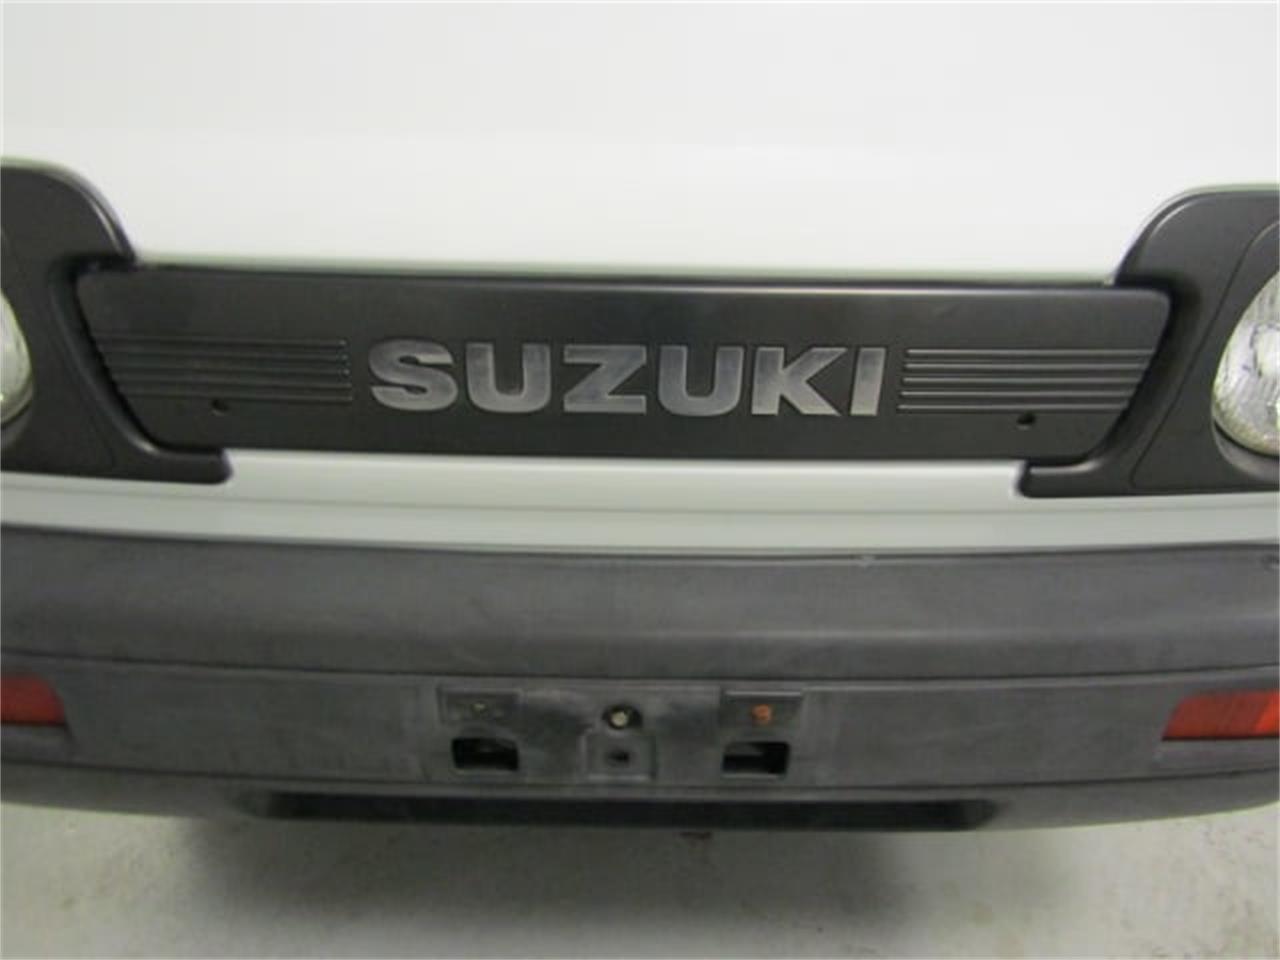 Large Picture of '90 Suzuki Carry located in Virginia Offered by Duncan Imports & Classic Cars - KOCF